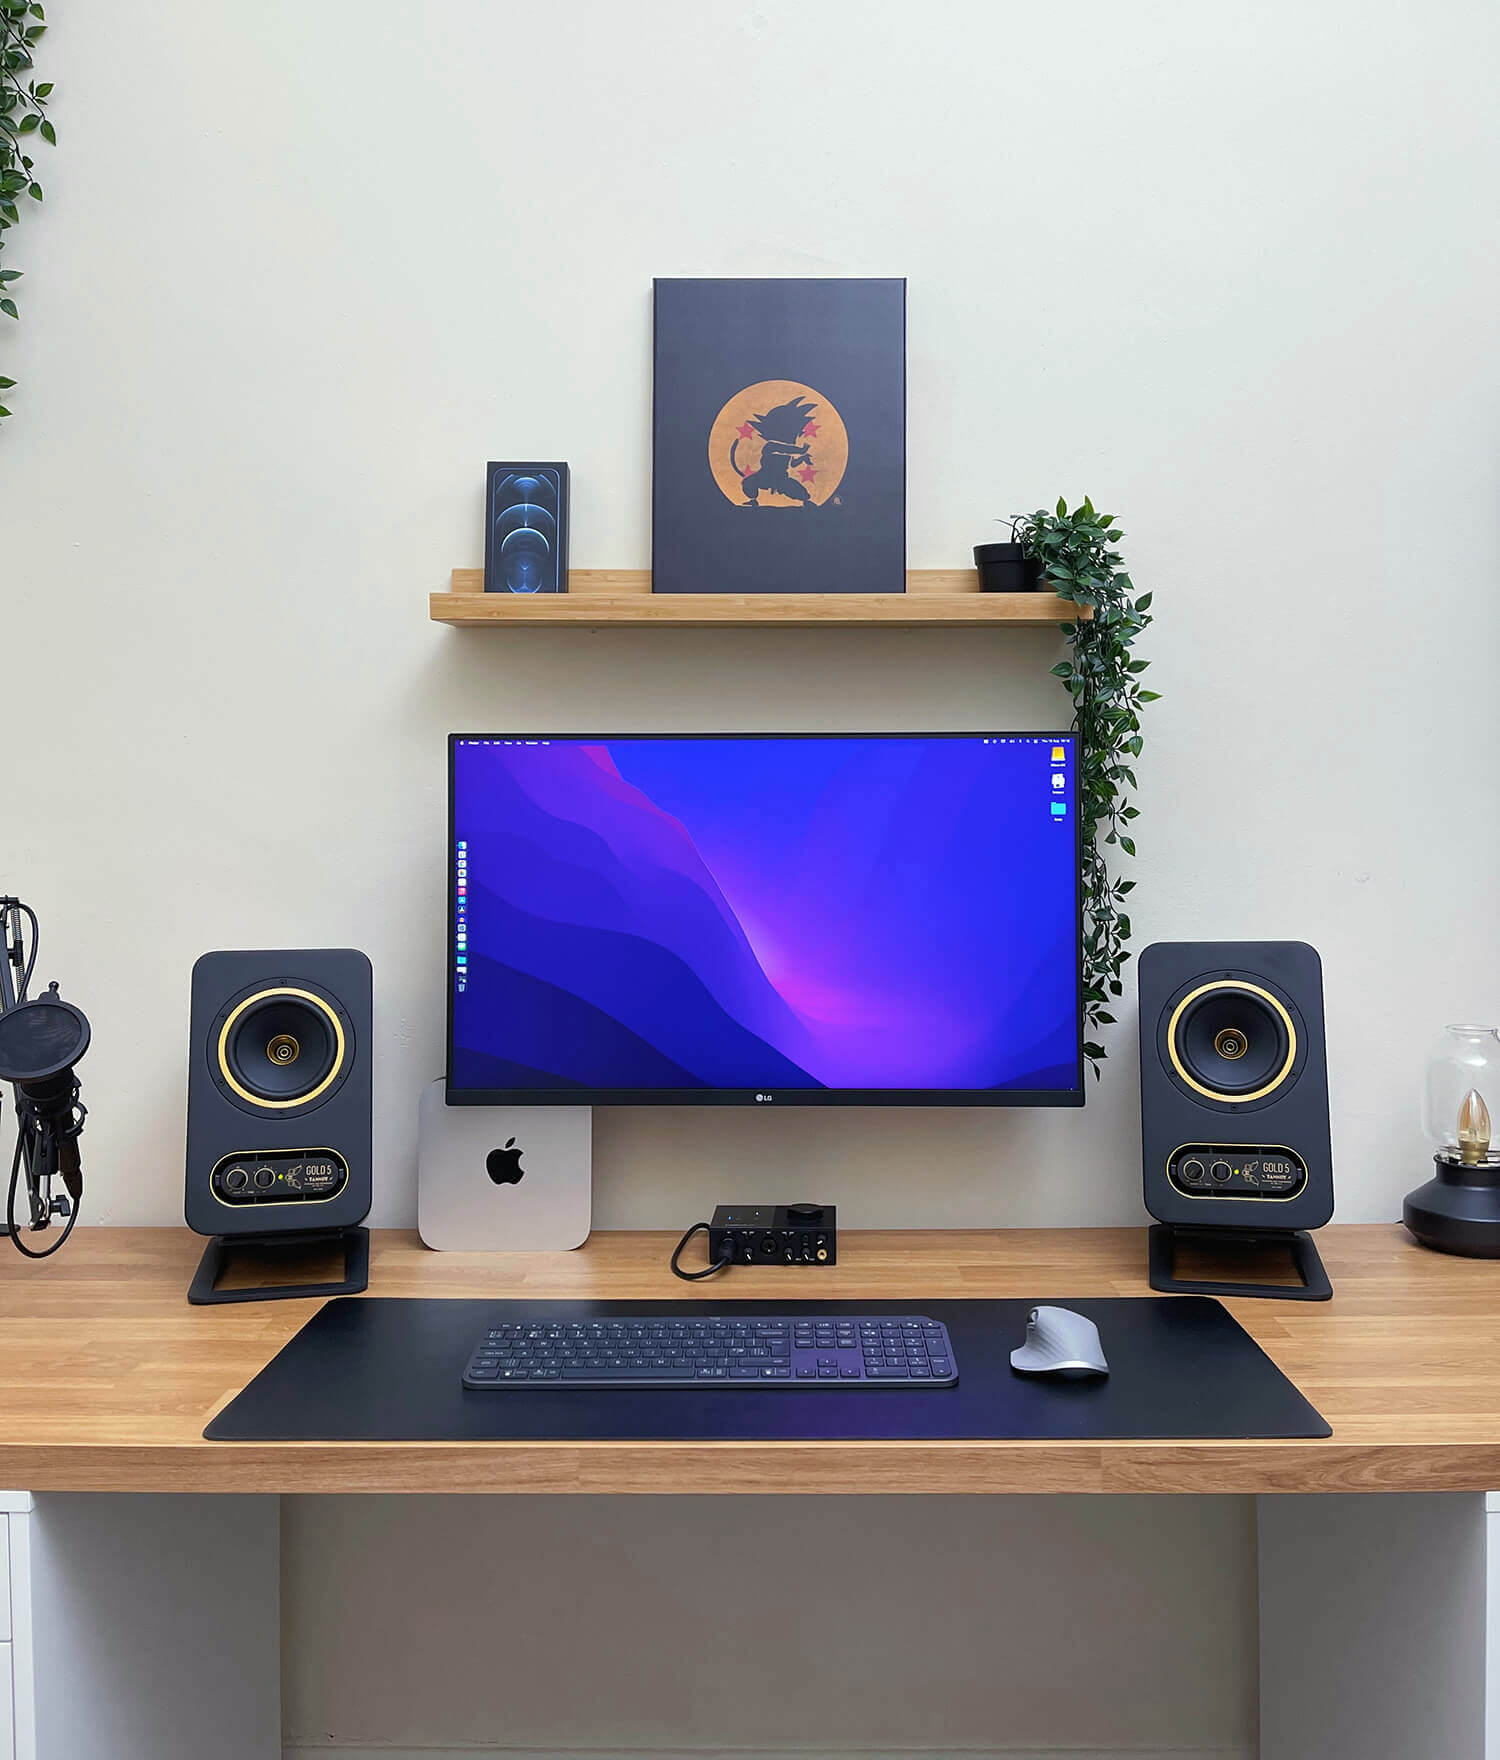 Budget WFH setup with a monitor, keyboard, mouse, and speakers